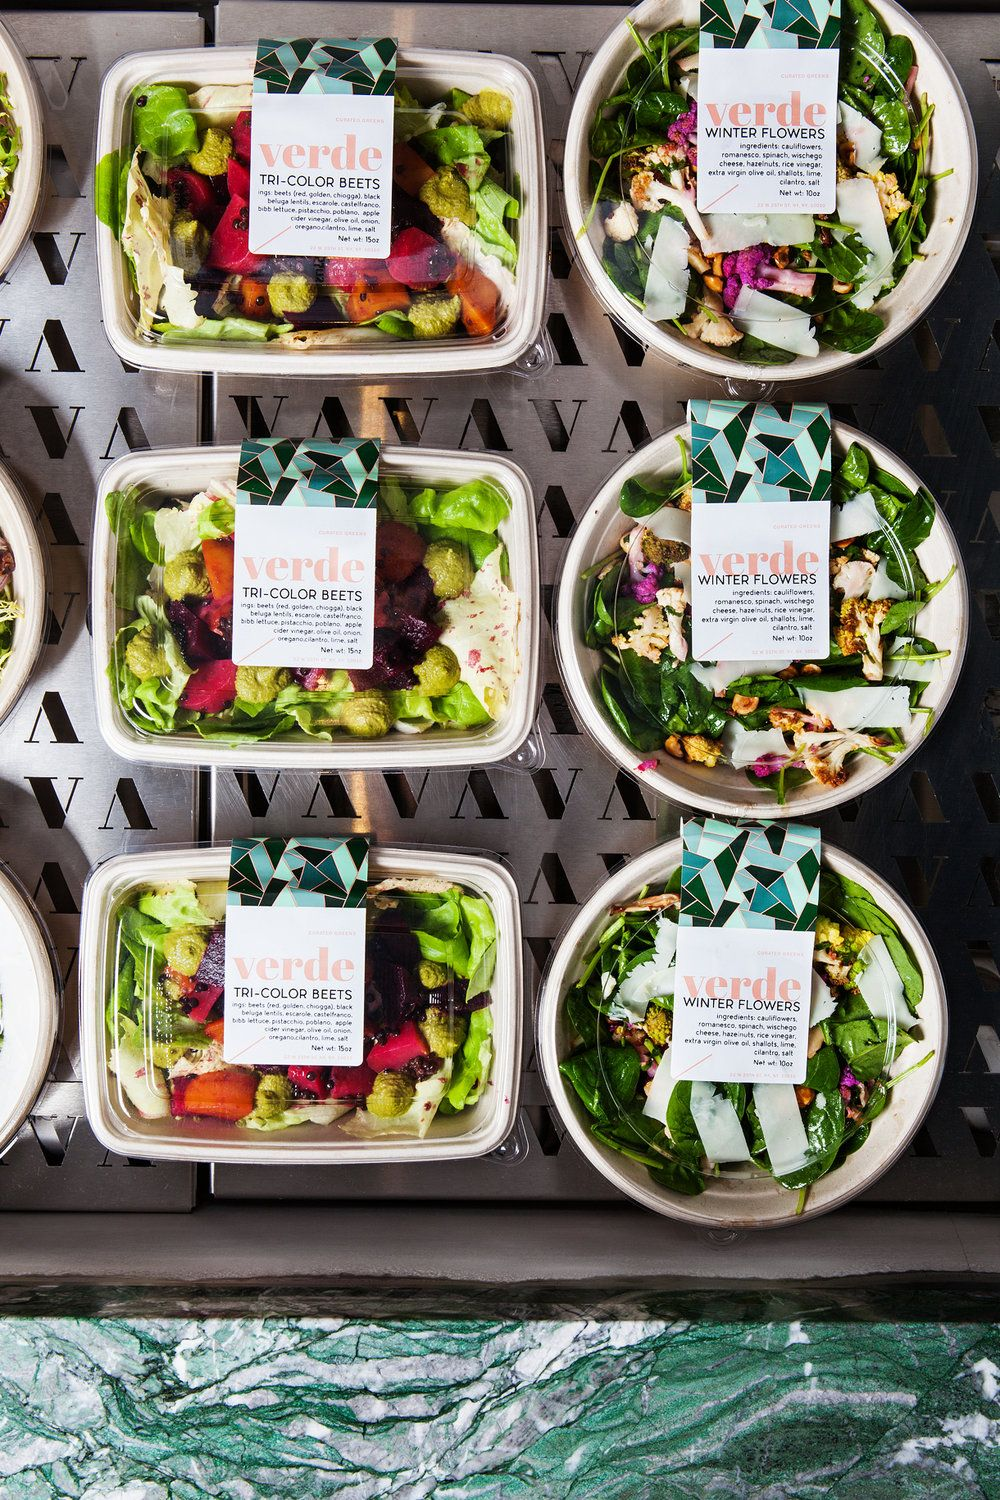 Verde New York The Mp Shift In 2020 Salad Packaging Food Packaging Design Food Delivery Packaging